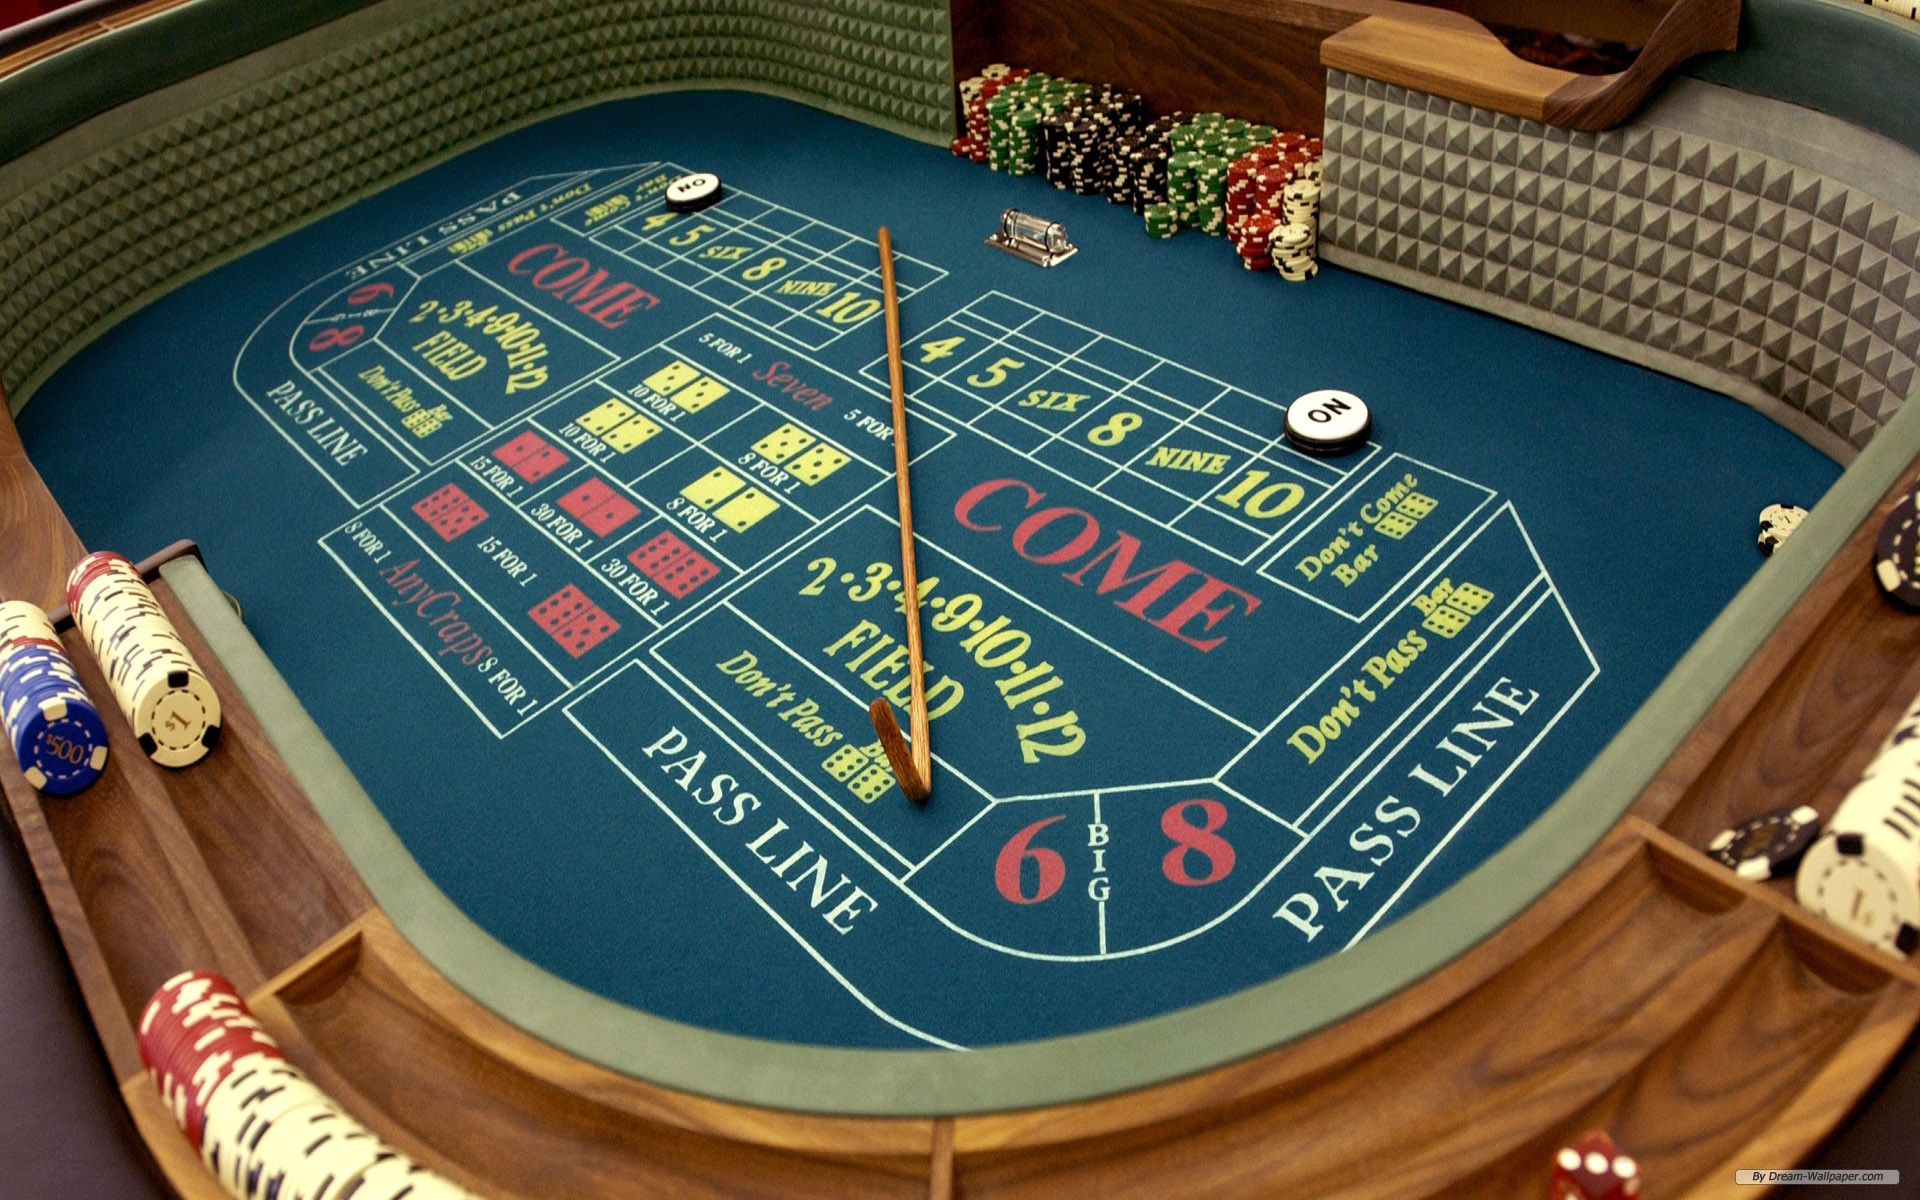 How To Start Online Casino With Lower Than $100